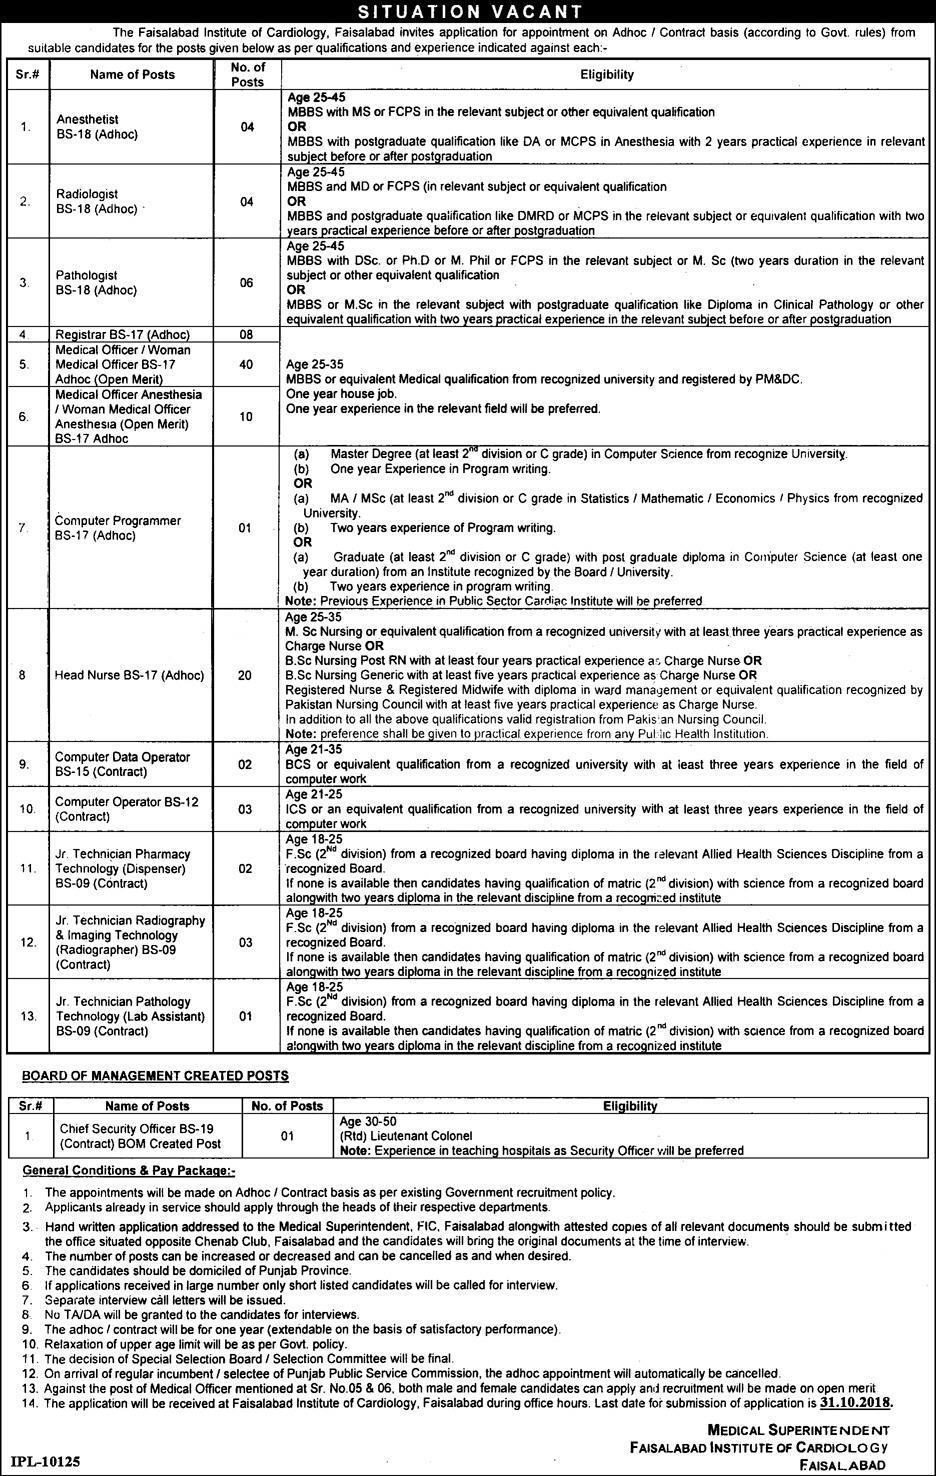 Faisalabad Institute of Cardiology Jobs 2018 Apply Online